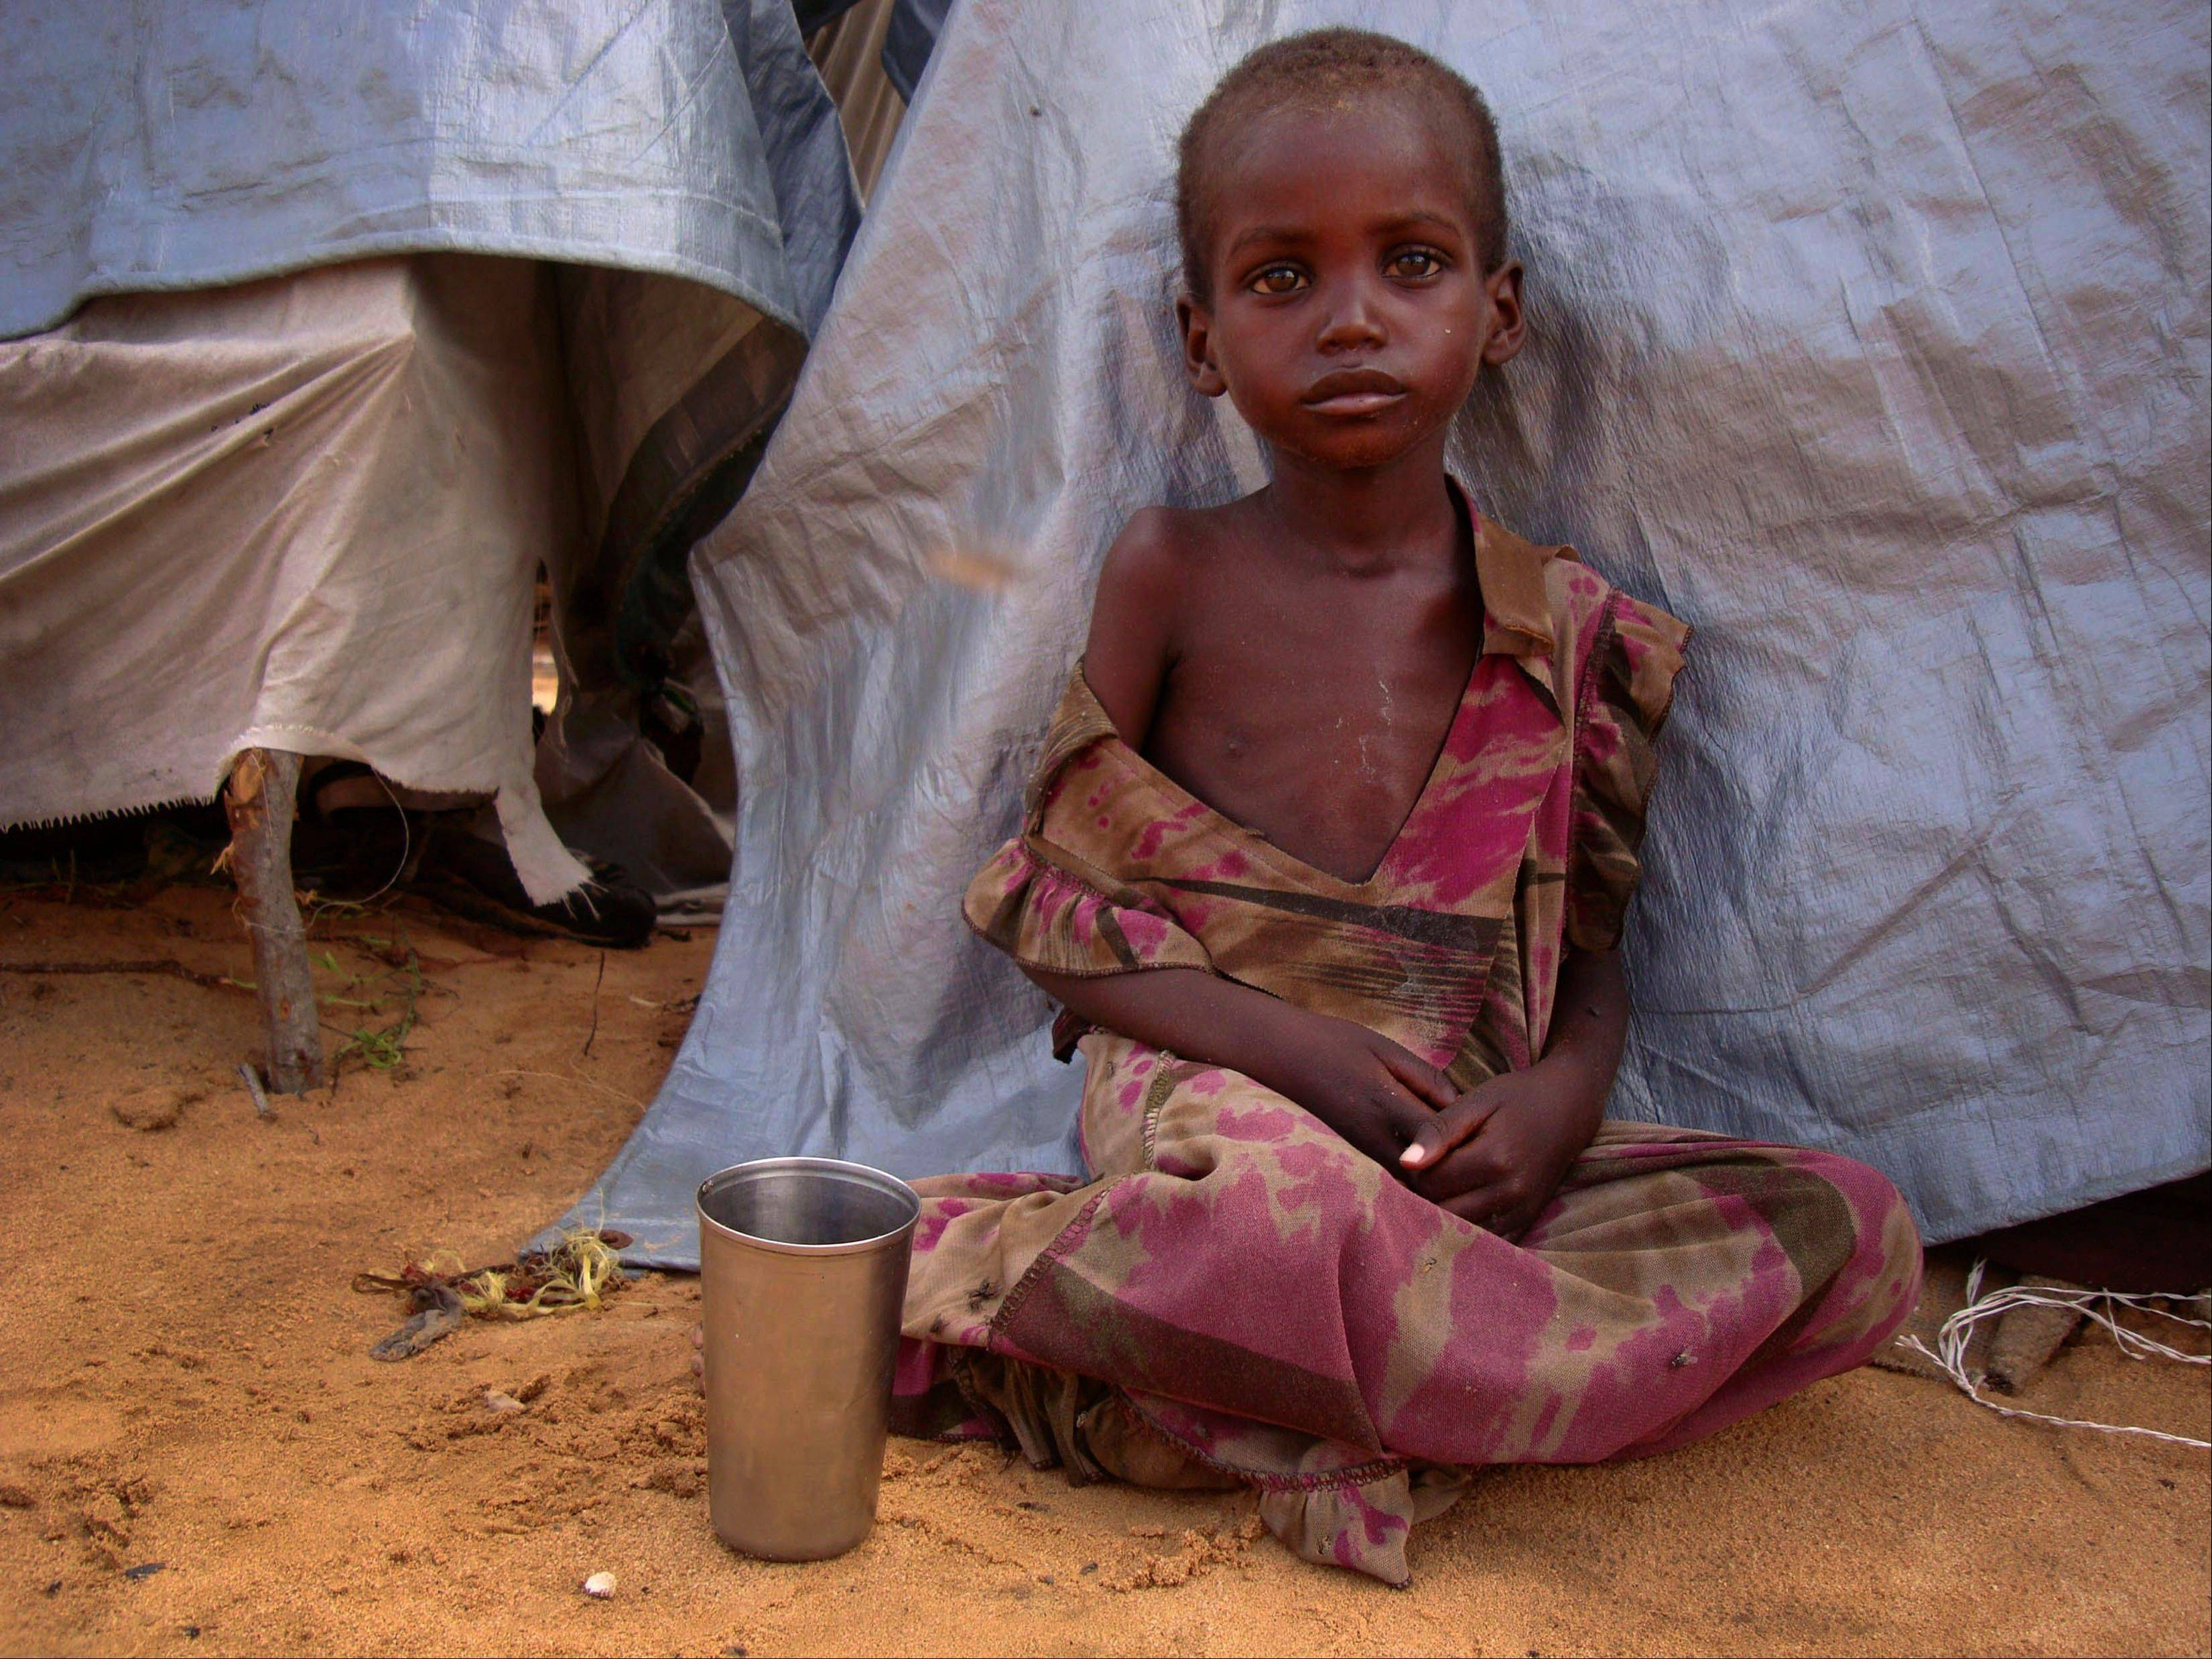 A girl from southern Somalia sits outside a makeshift shelter at a refugee camp in Mogadishu, Somalia, Tuesday, Aug 9, 2011. The number of people fleeing famine-hit areas of Somalia is likely to rise dramatically and could overwhelm international aid efforts in the Horn of Africa, a U.N. aid official said Tuesday. (AP Photo/Farah Abdi Warsameh)